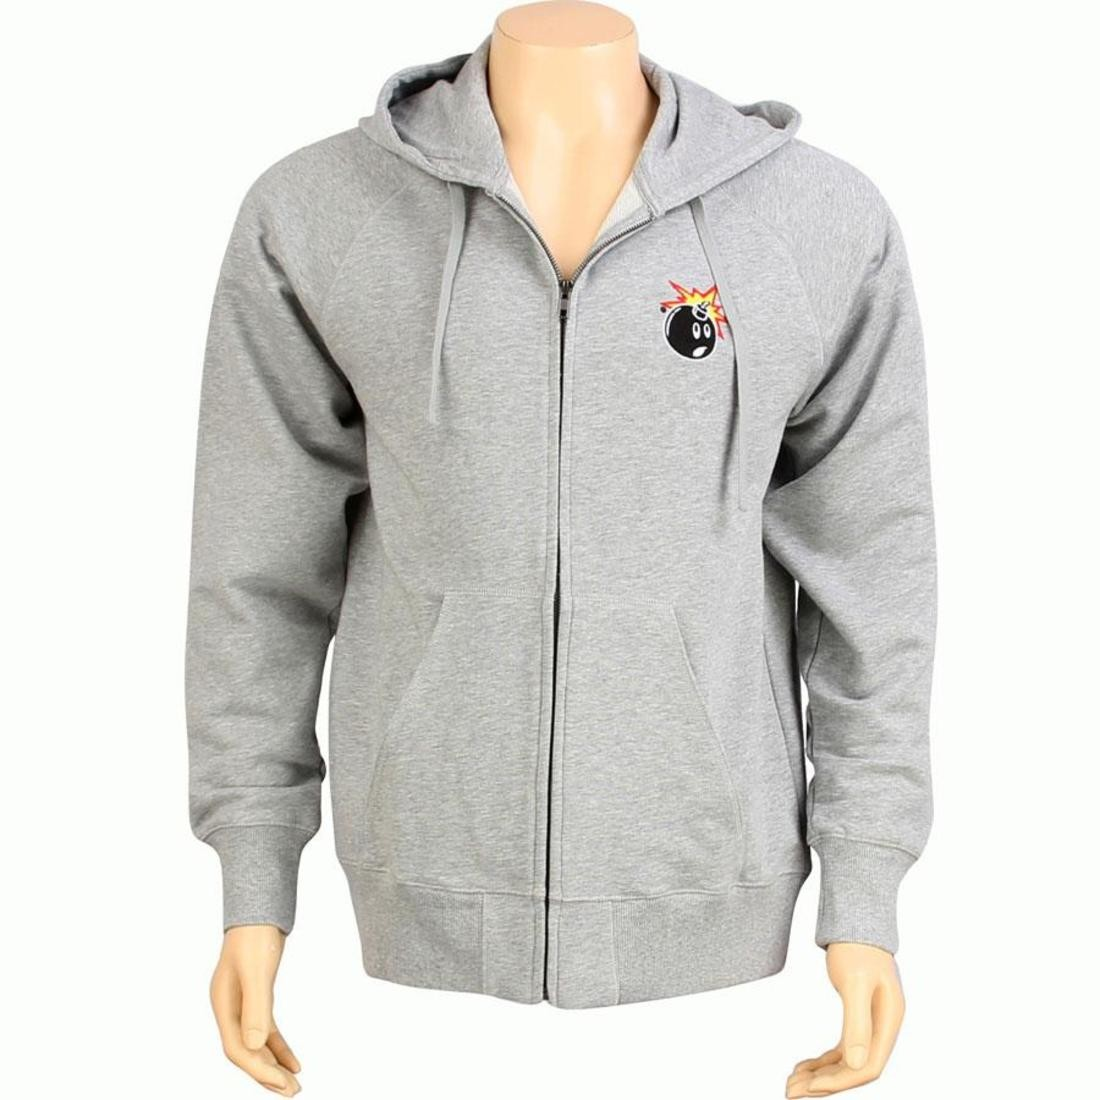 【海外限定】フーディー パーカー トップス 【 THE HUNDREDS SIDE ZIP UP HOODY ATHLETIC HEATHER 】